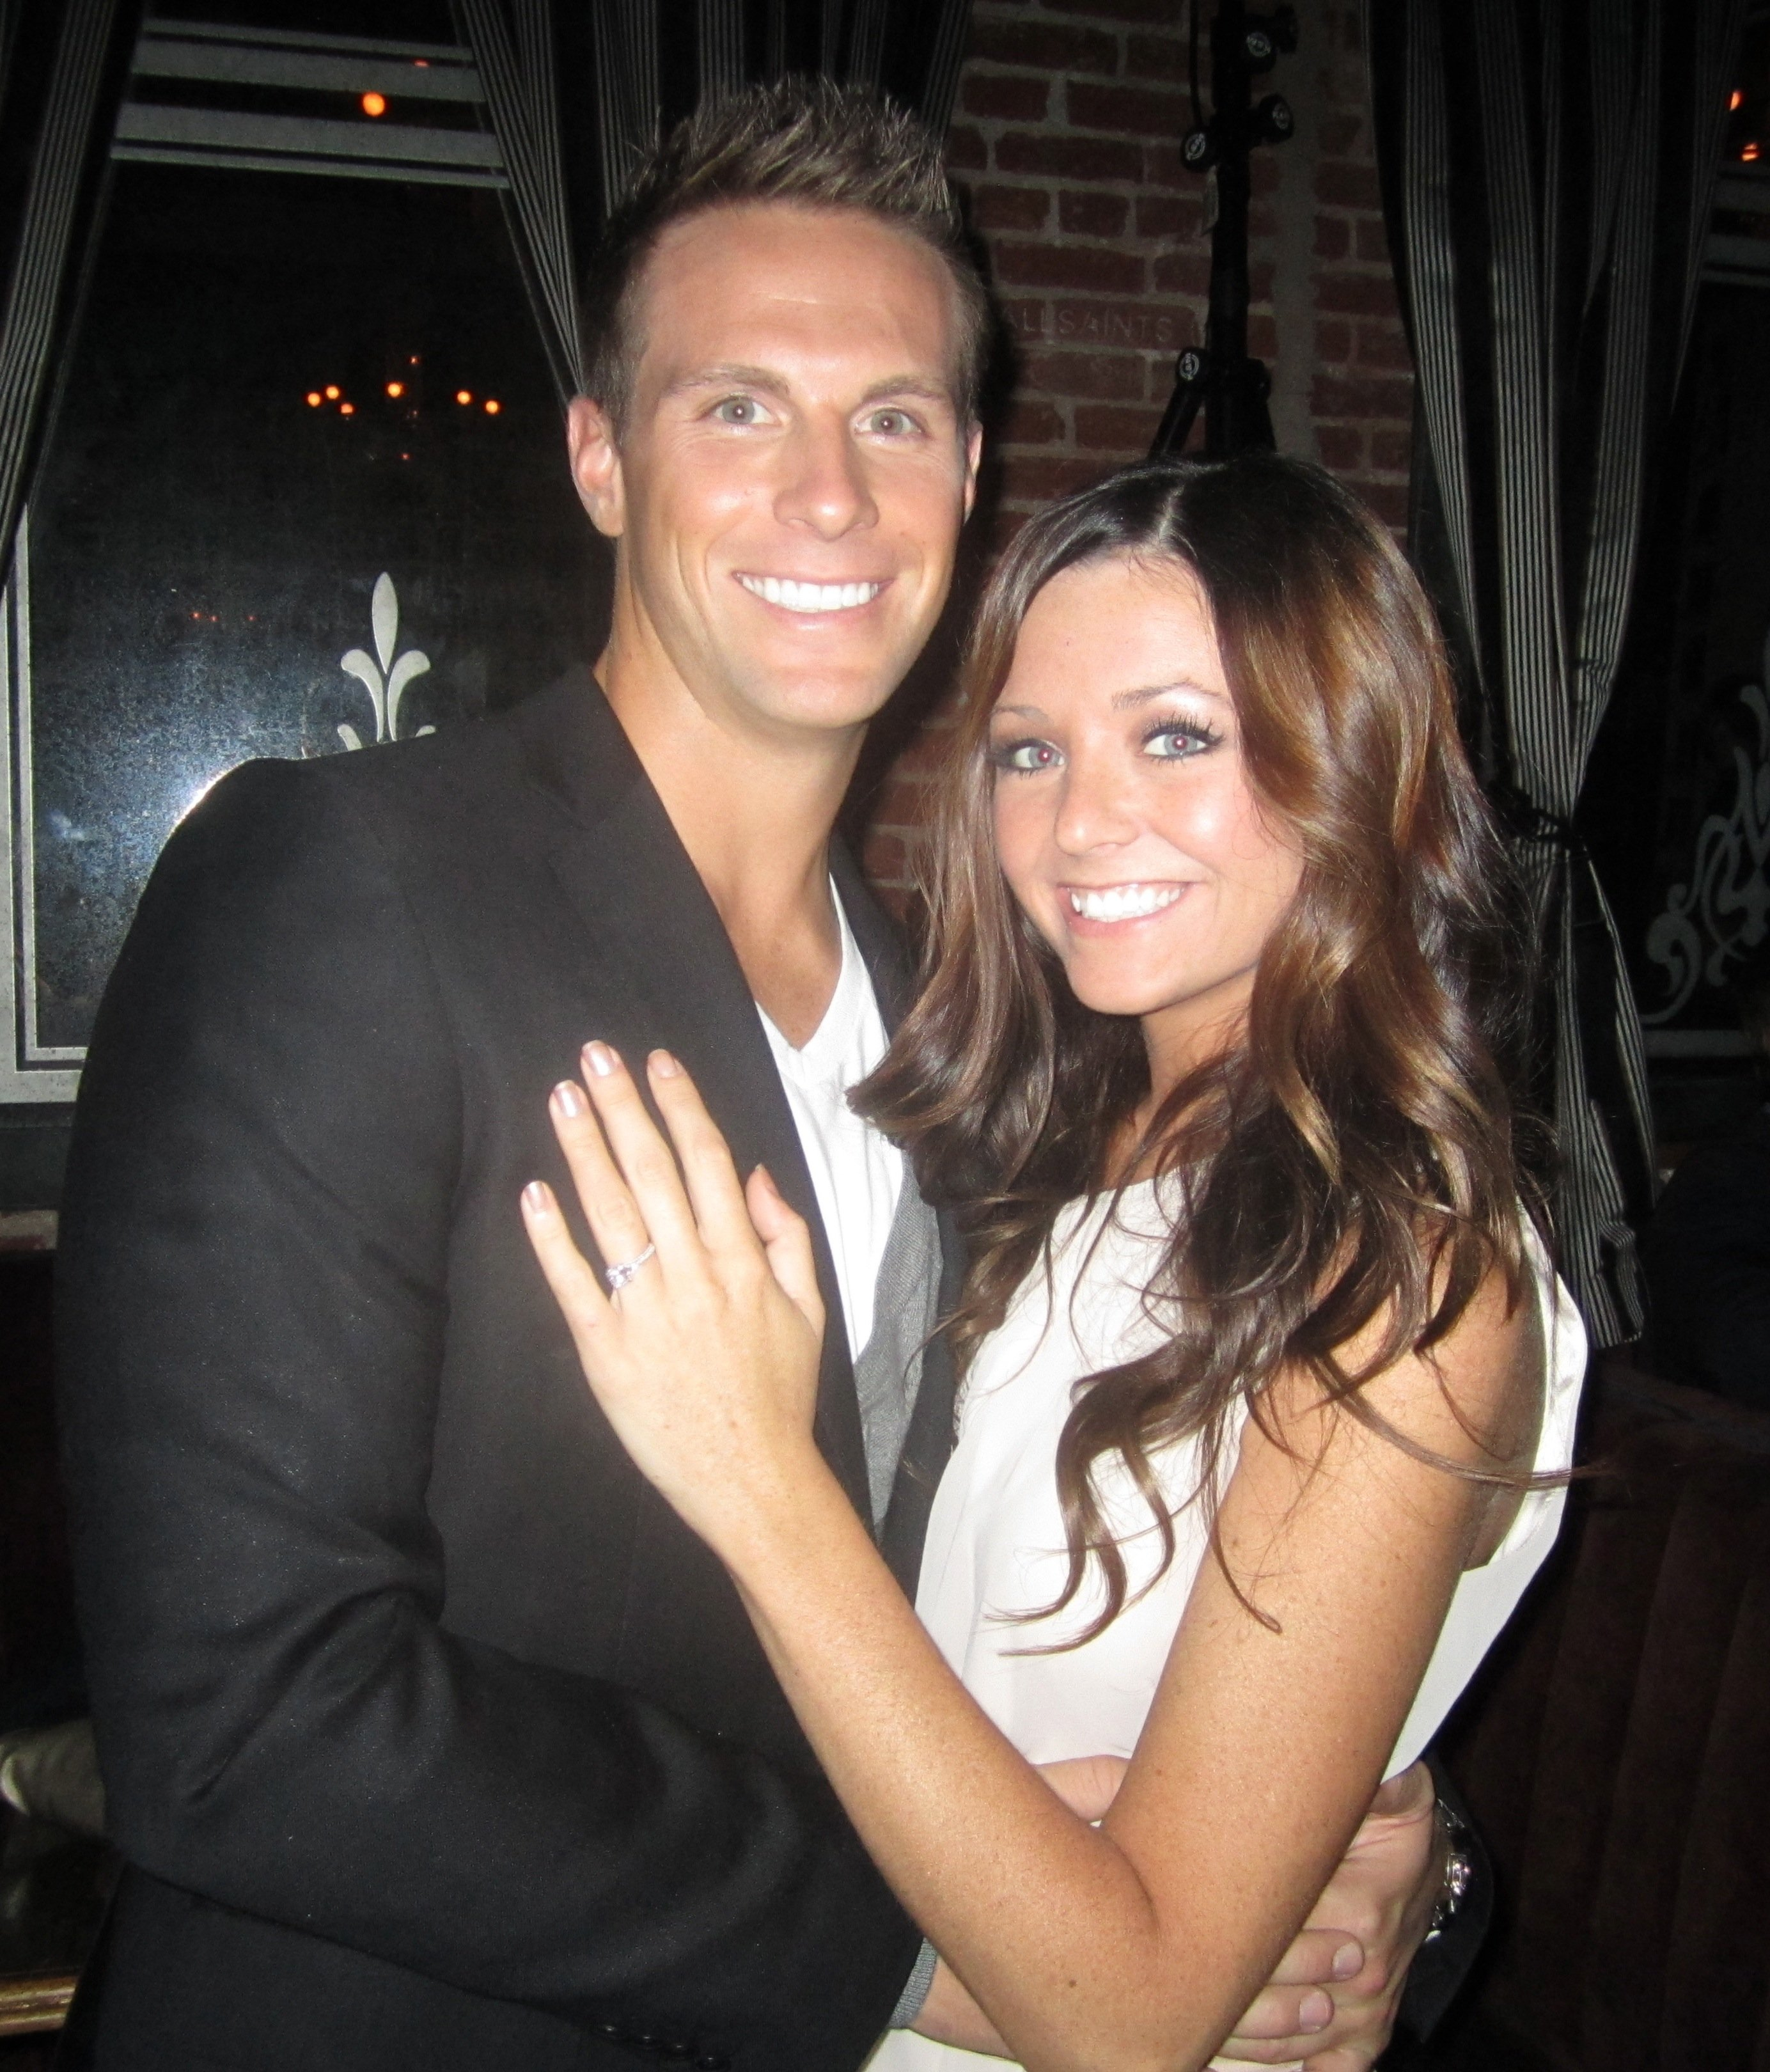 Holly Durst and Blake Julian